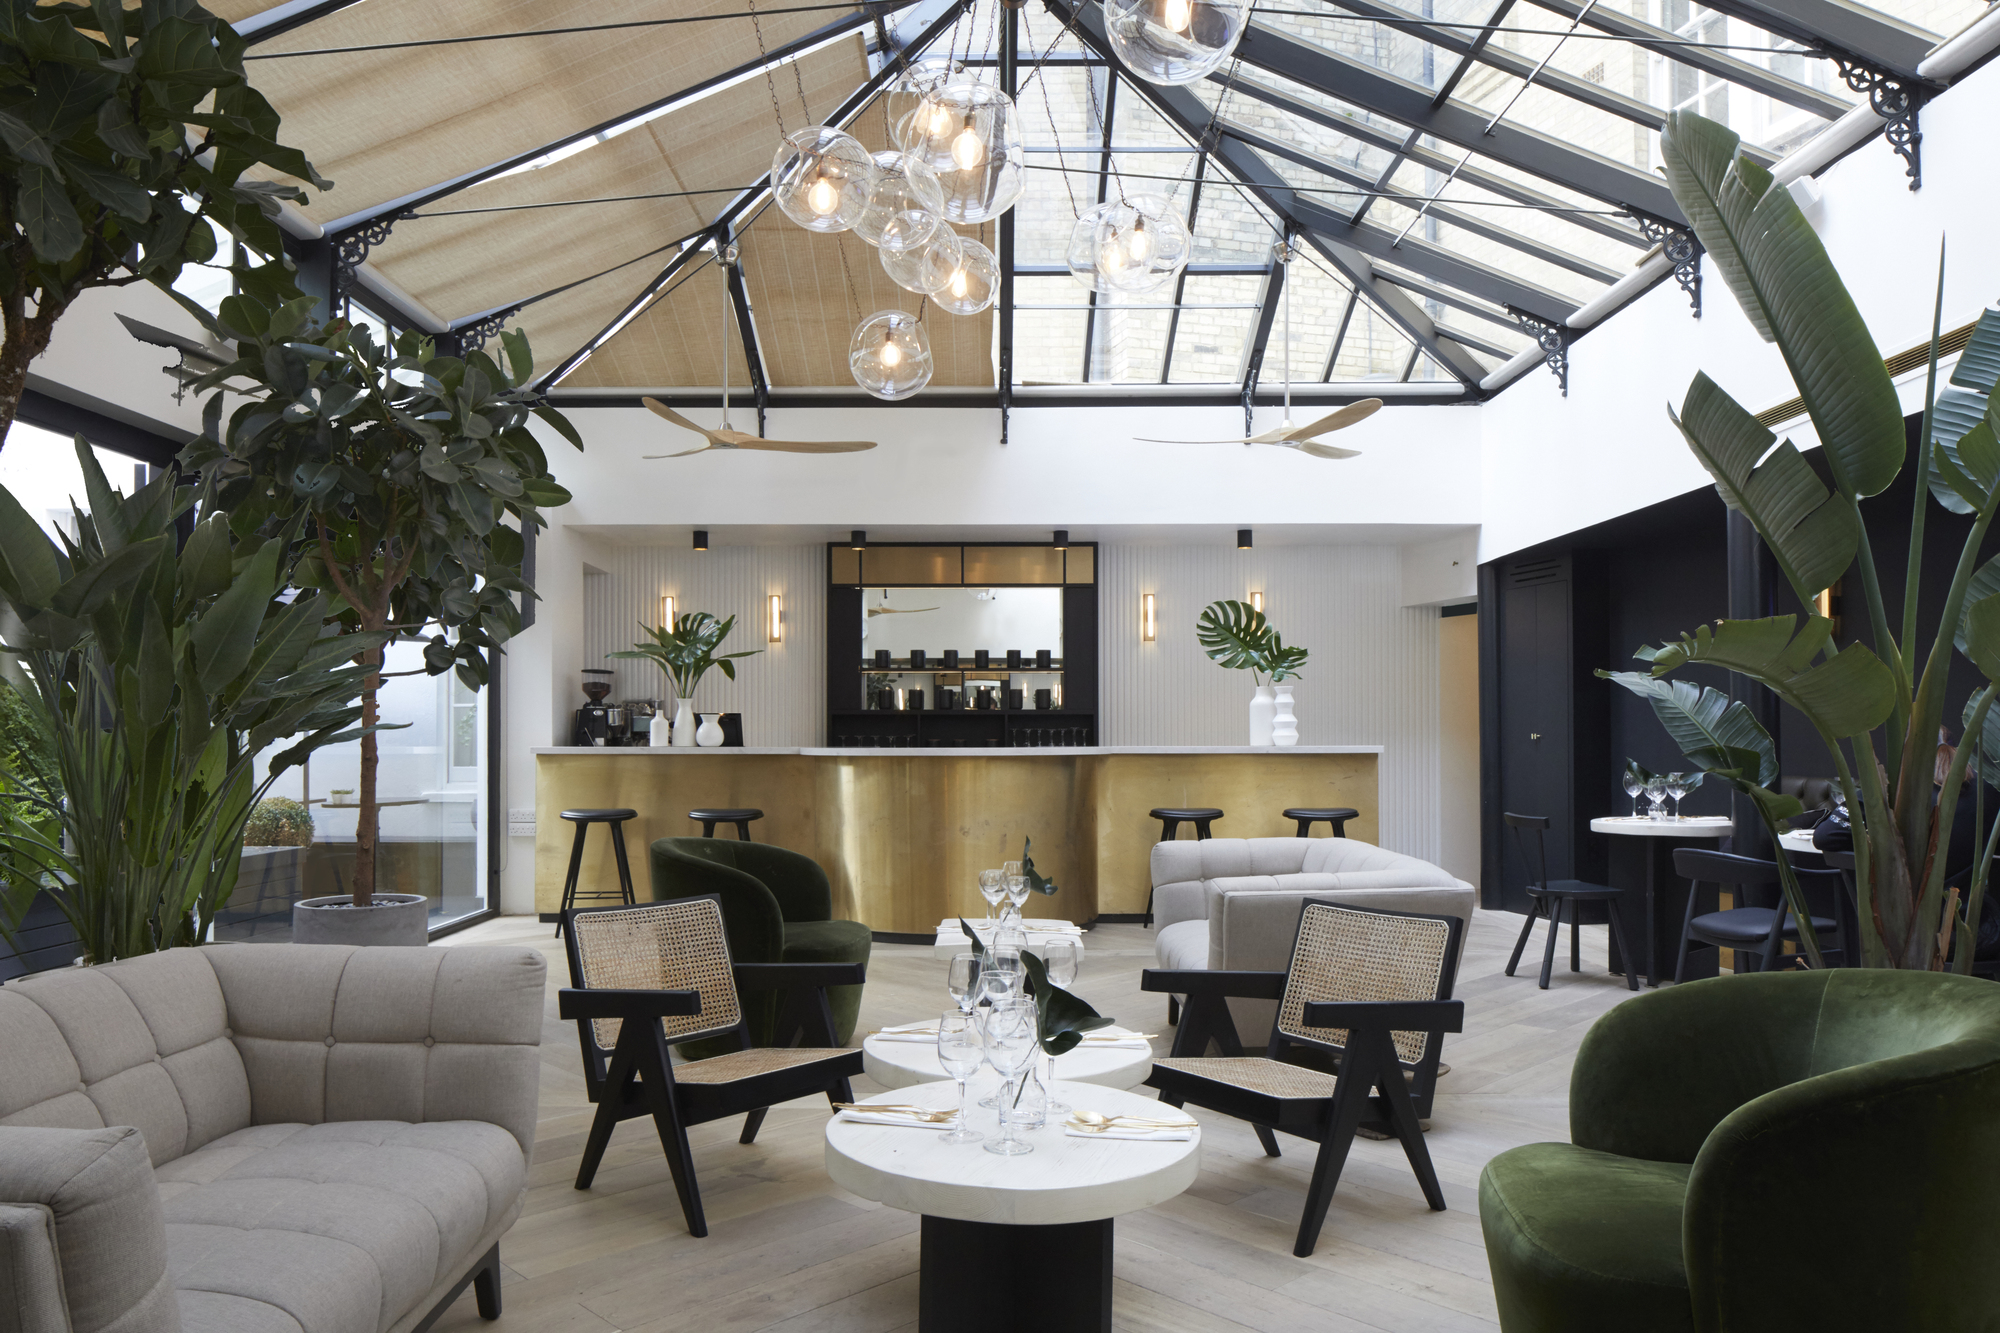 Mychelsea boutique hotel design haus liberty archdaily for Design boutique hotel tirol